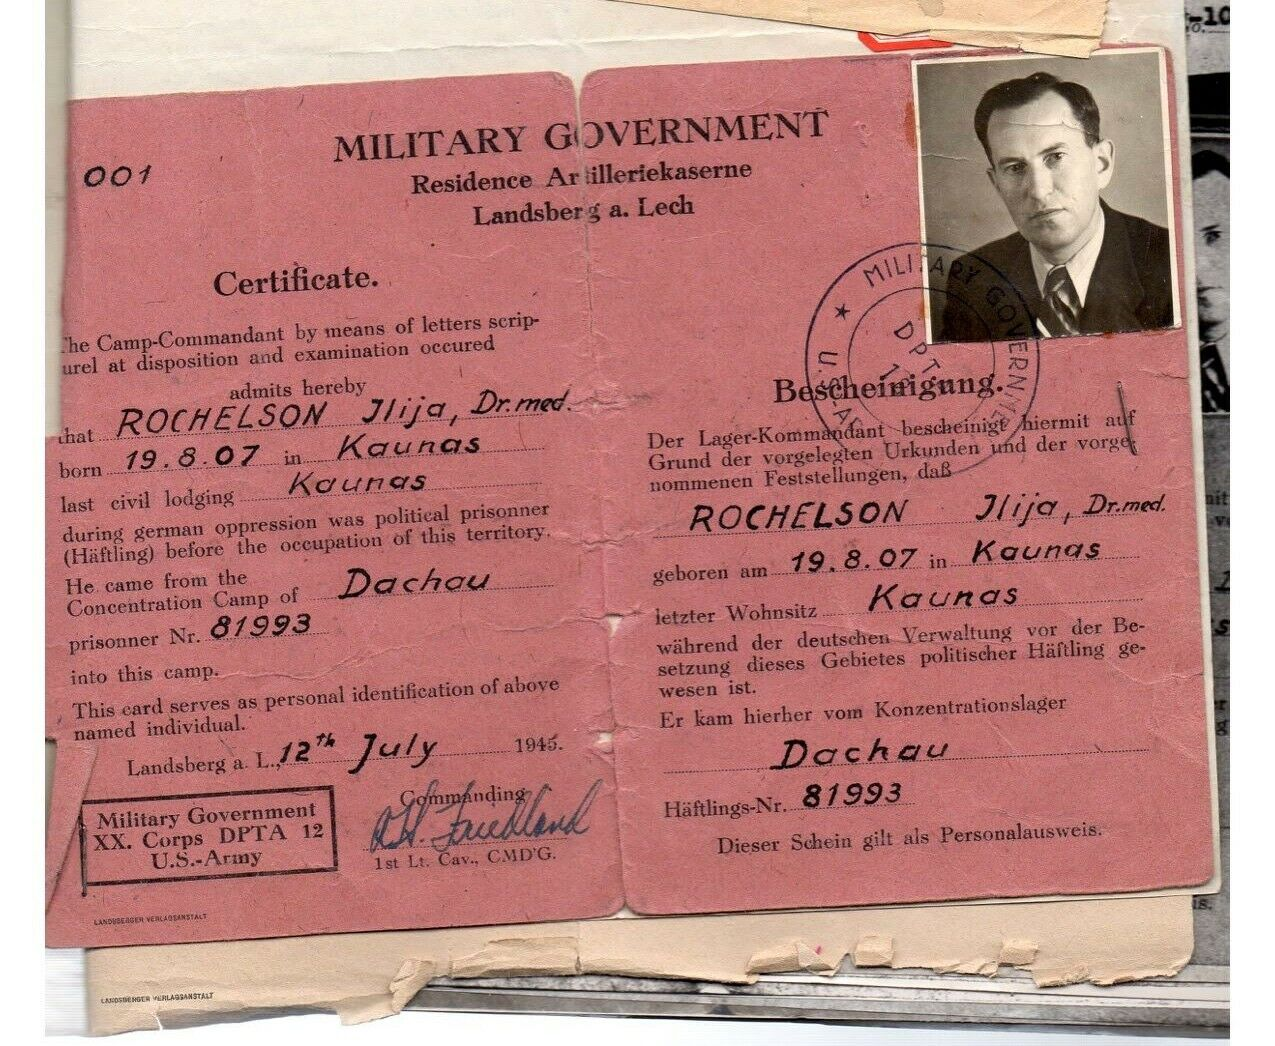 A scan of a worn U.S. military government document written in German and filled out with Eli Rochelson's information.